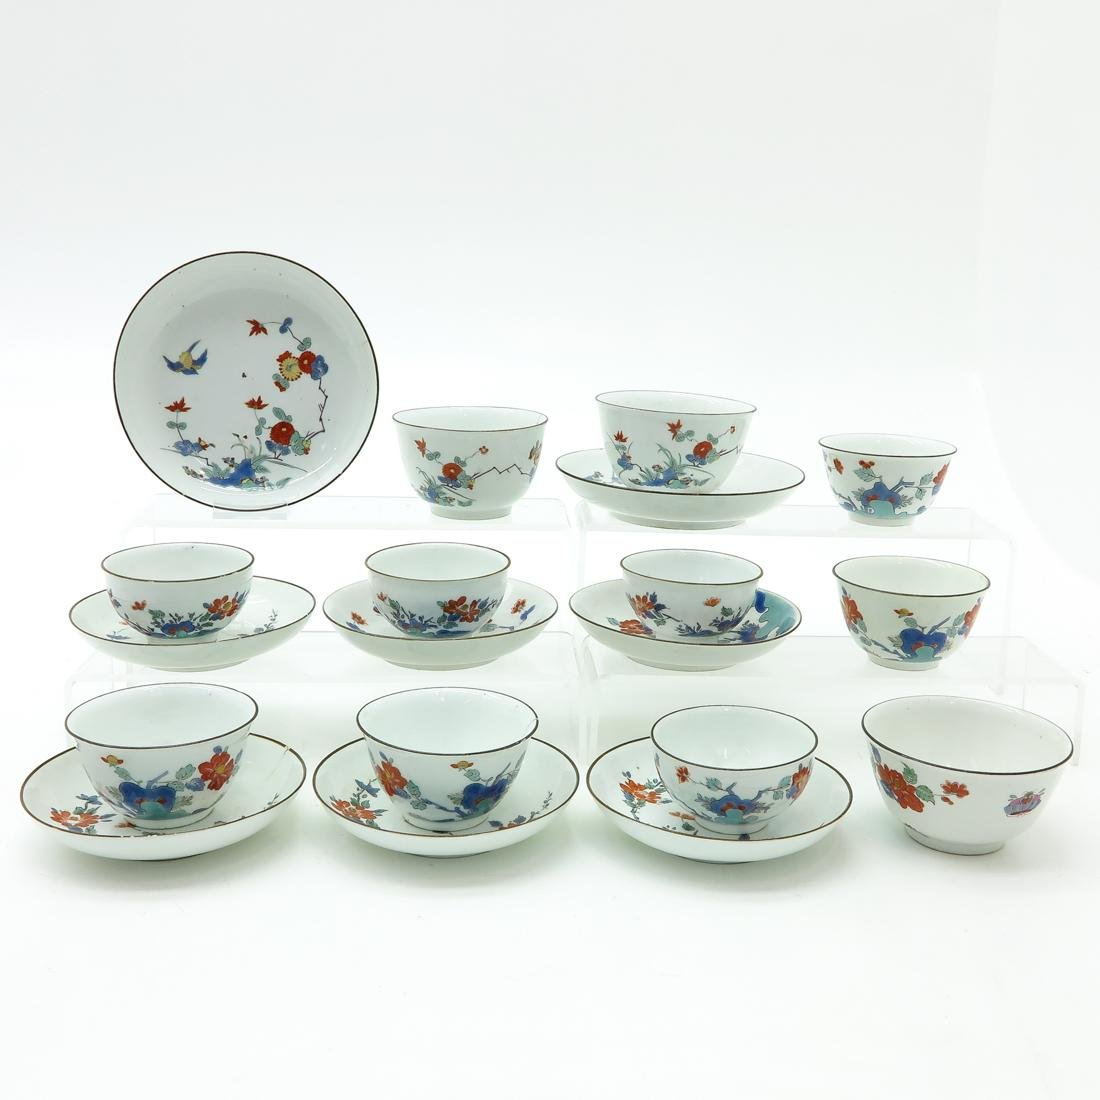 18th - 19th Century Meissen Kakimon Cups and Saucers